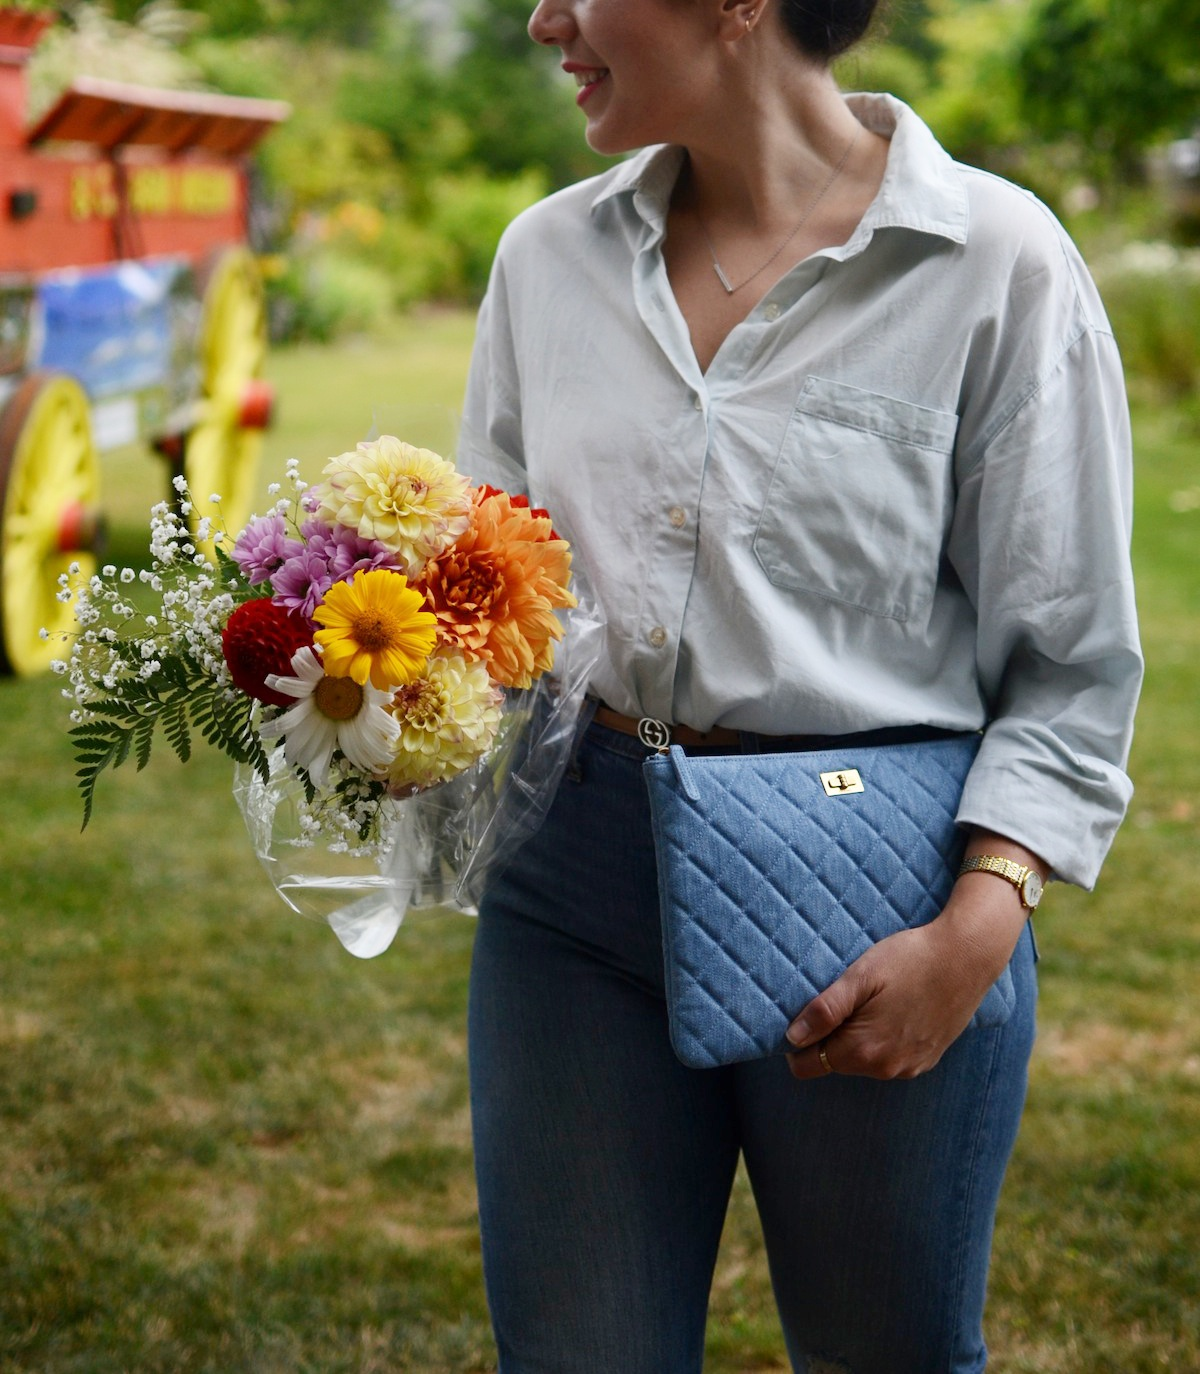 Chanel denim pouch levi's wedgie jeans outfit fort langley vancouver fashion blogger Canadian tuxedo outfit